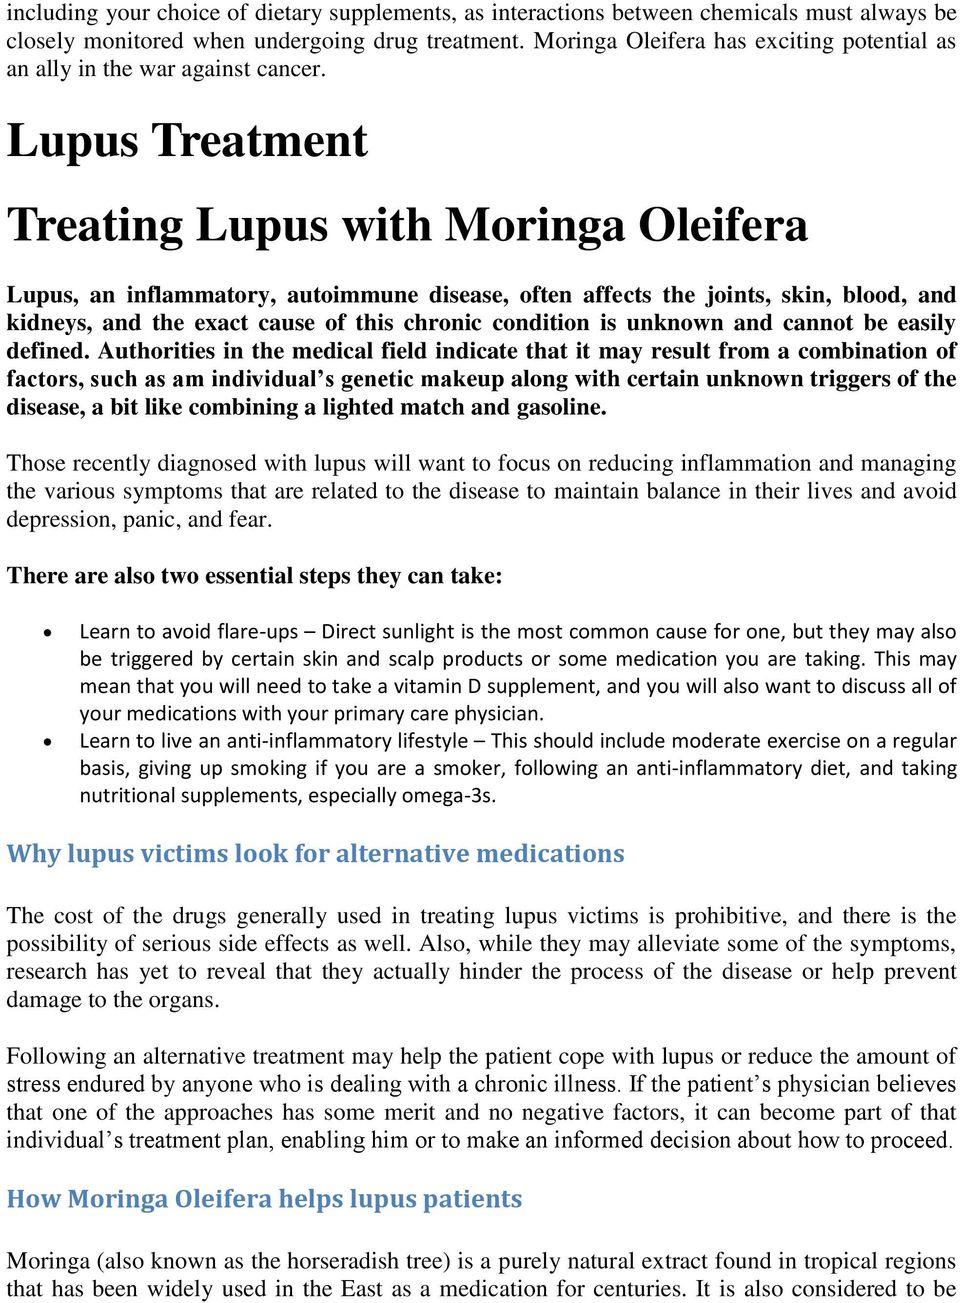 Lupus Treatment Treating Lupus with Moringa Oleifera Lupus, an inflammatory, autoimmune disease, often affects the joints, skin, blood, and kidneys, and the exact cause of this chronic condition is